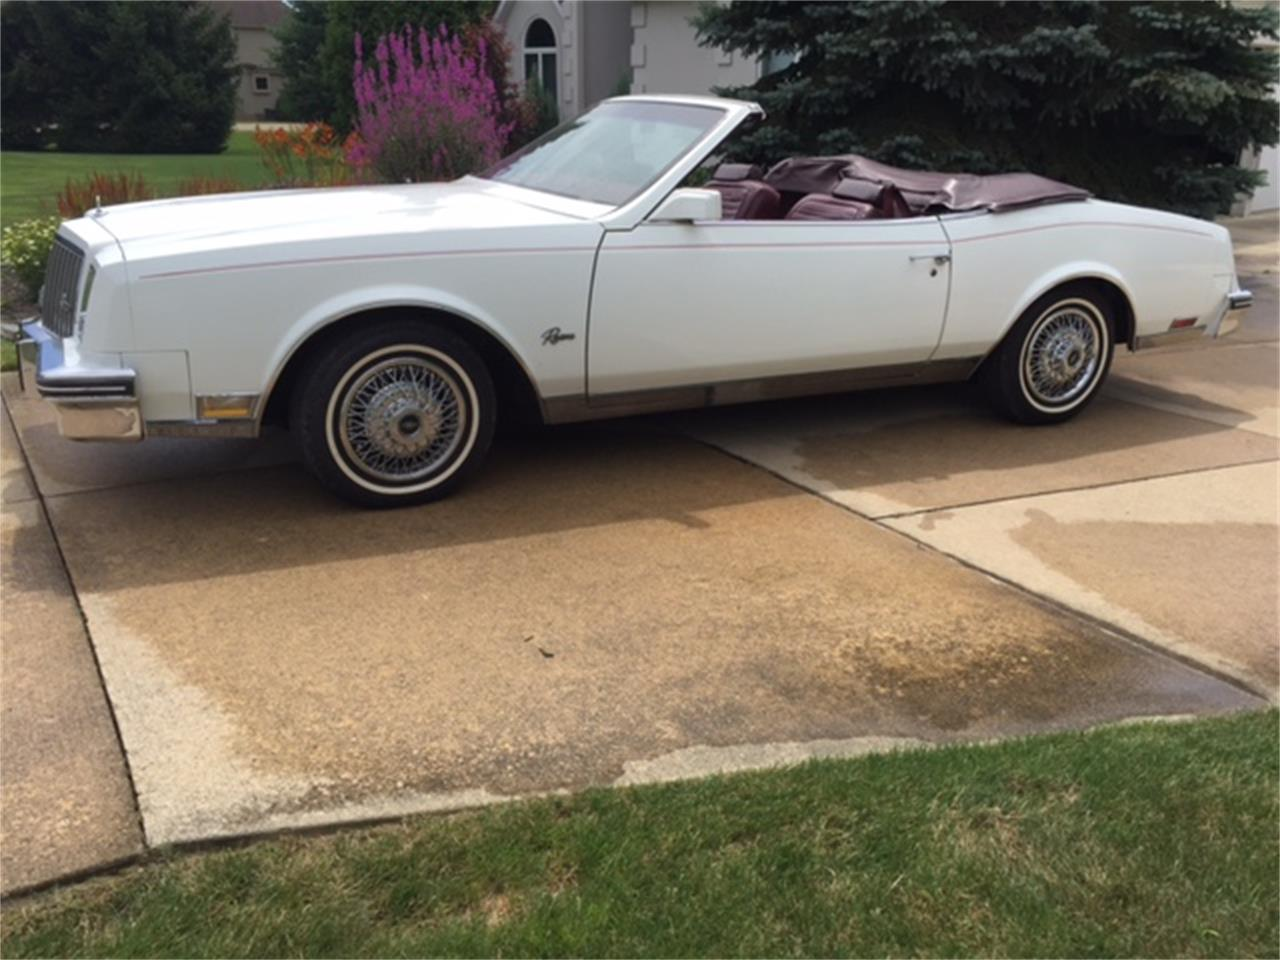 Large Picture of 1983 Buick Riviera located in Wadsworth Ohio - $14,000.00 Offered by a Private Seller - LHEX